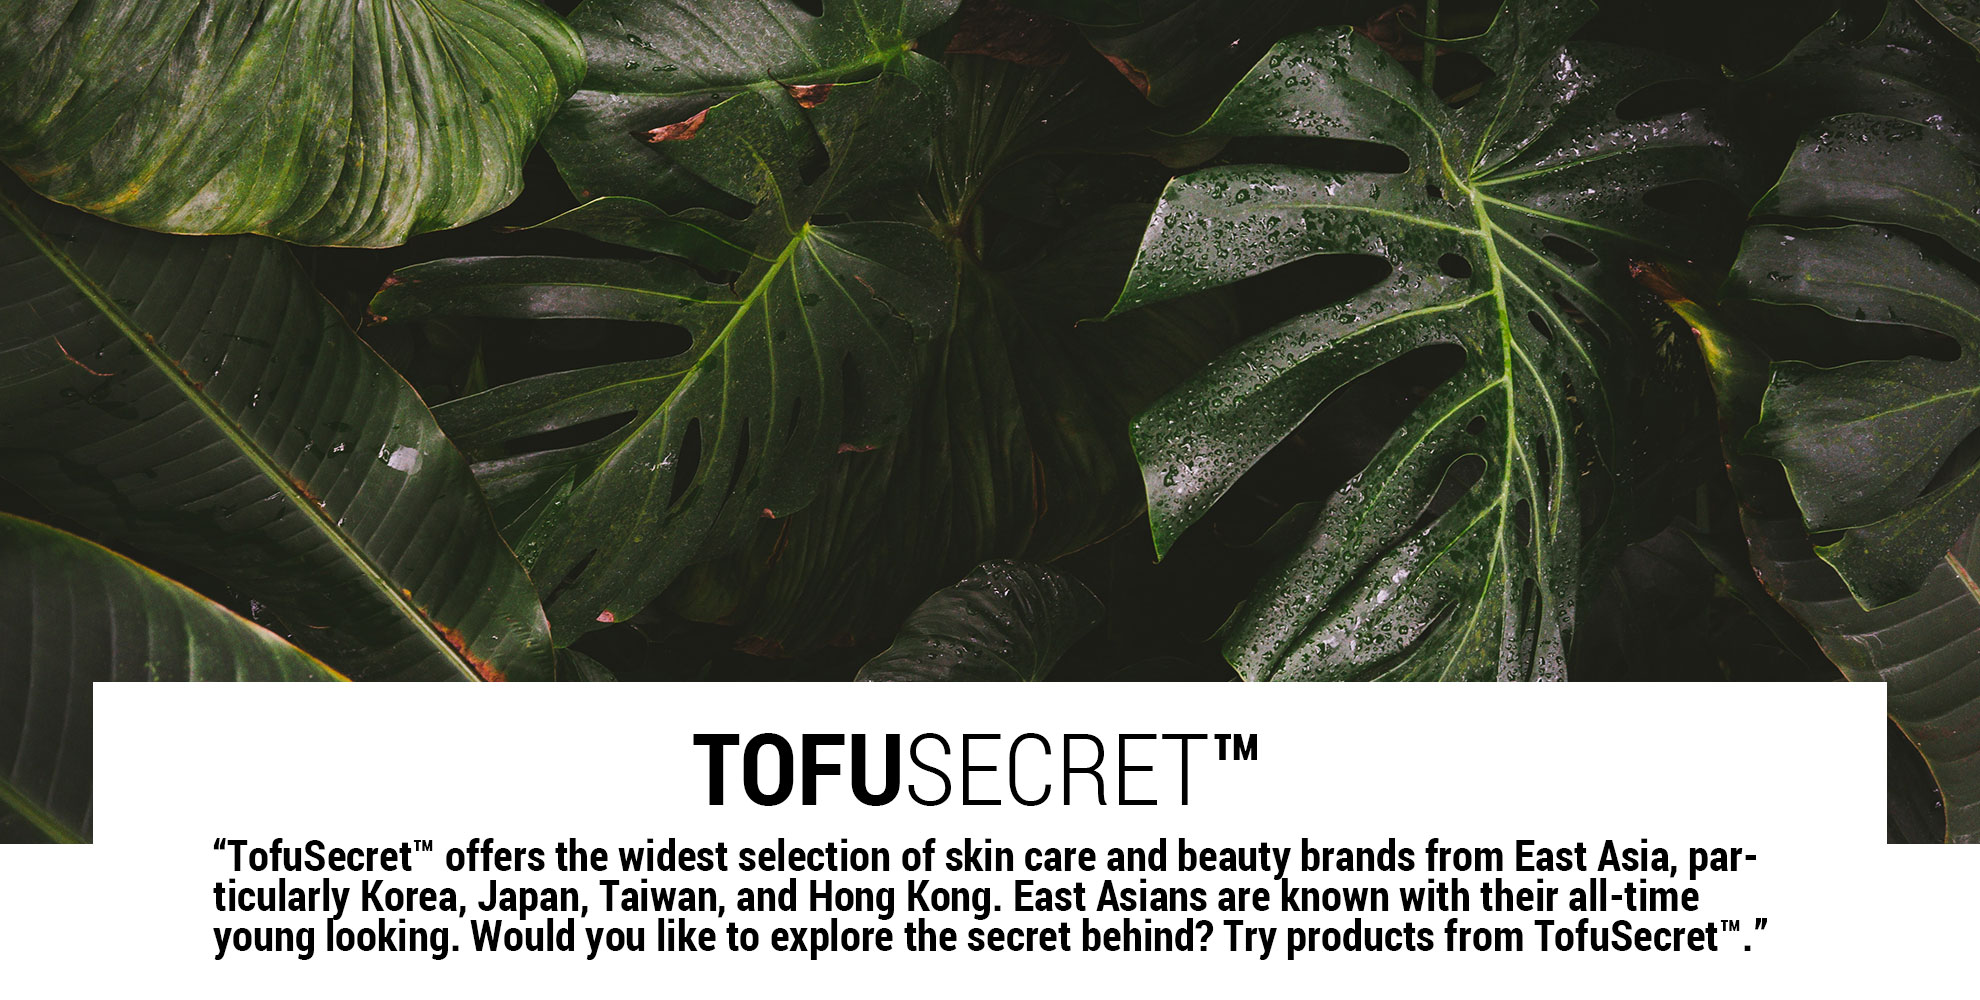 TofuSecret™ offers the widest selection of skin care and beauty brands from East Asia, particularly Korea, Japan, Taiwan, and Hong Kong.